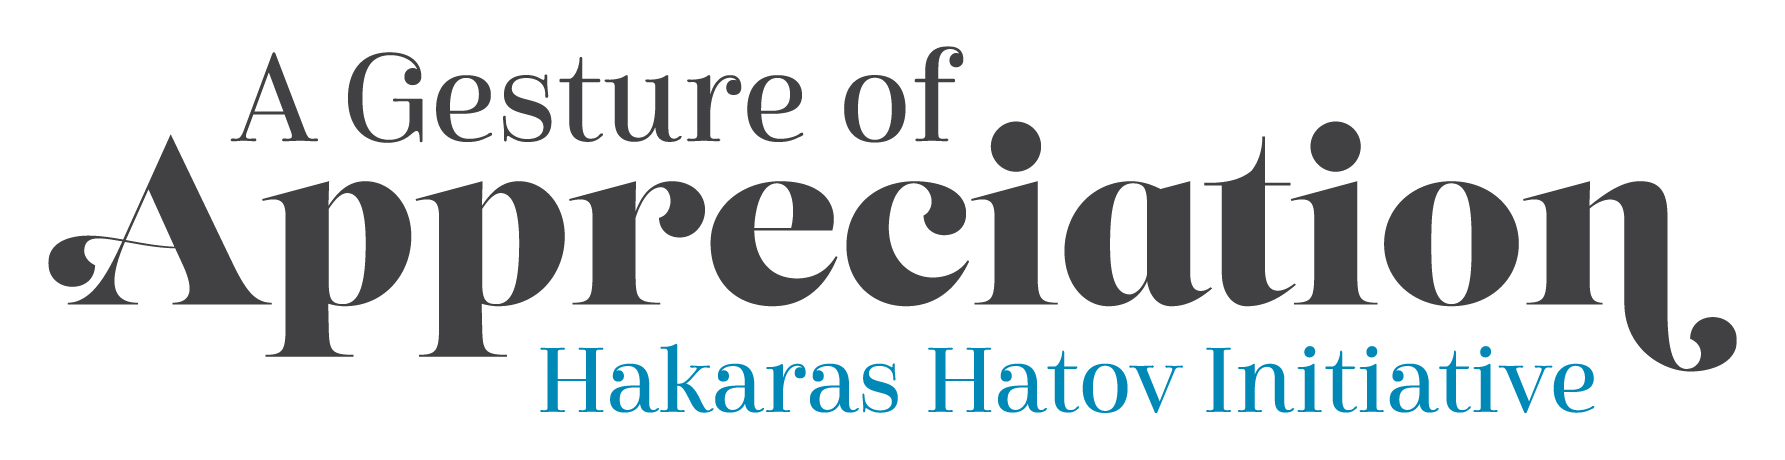 Hakaras Hatov Initiative